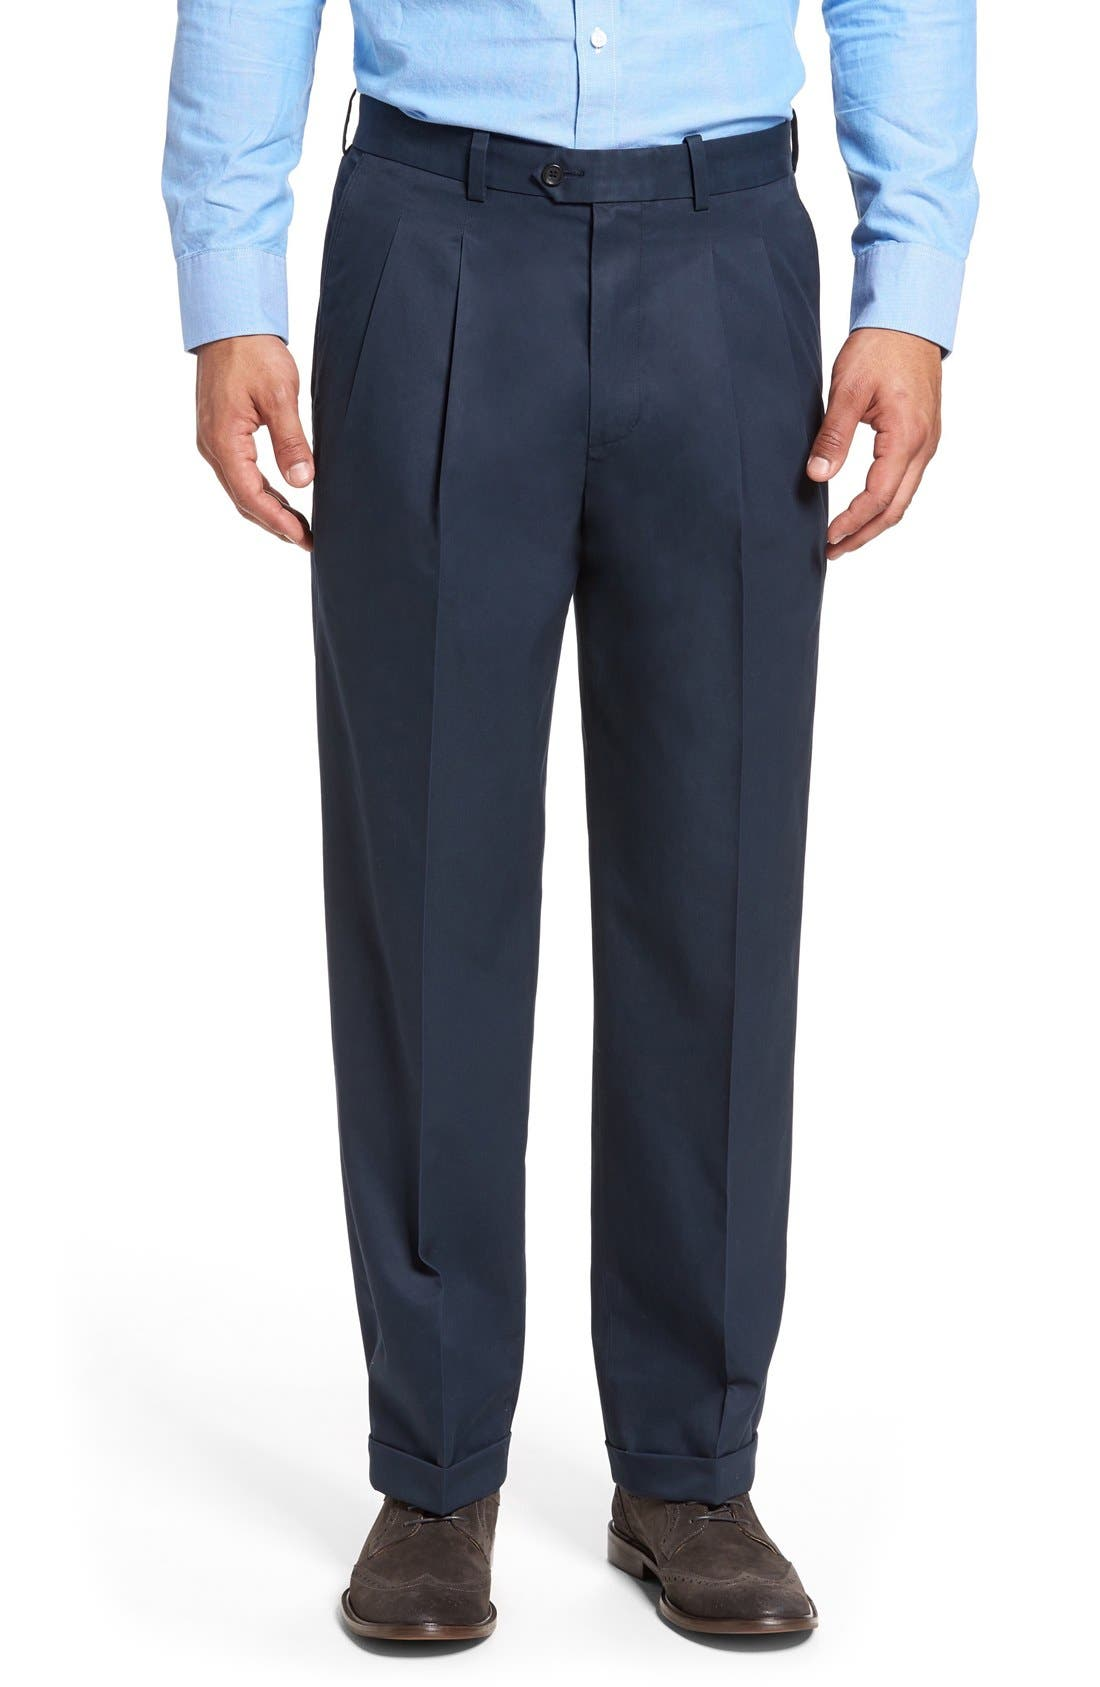 Relaxed, double-pleated trousers are crafted from durable Supima-cotton twill that\\\'s treated with Smartcare for a virtually wrinkle-free look. Style Name: Nordstrom Men\\\'s Shop Classic Smartcare Pleated Supima Cotton Dress Pants. Style Number: 5072771. Available in stores.